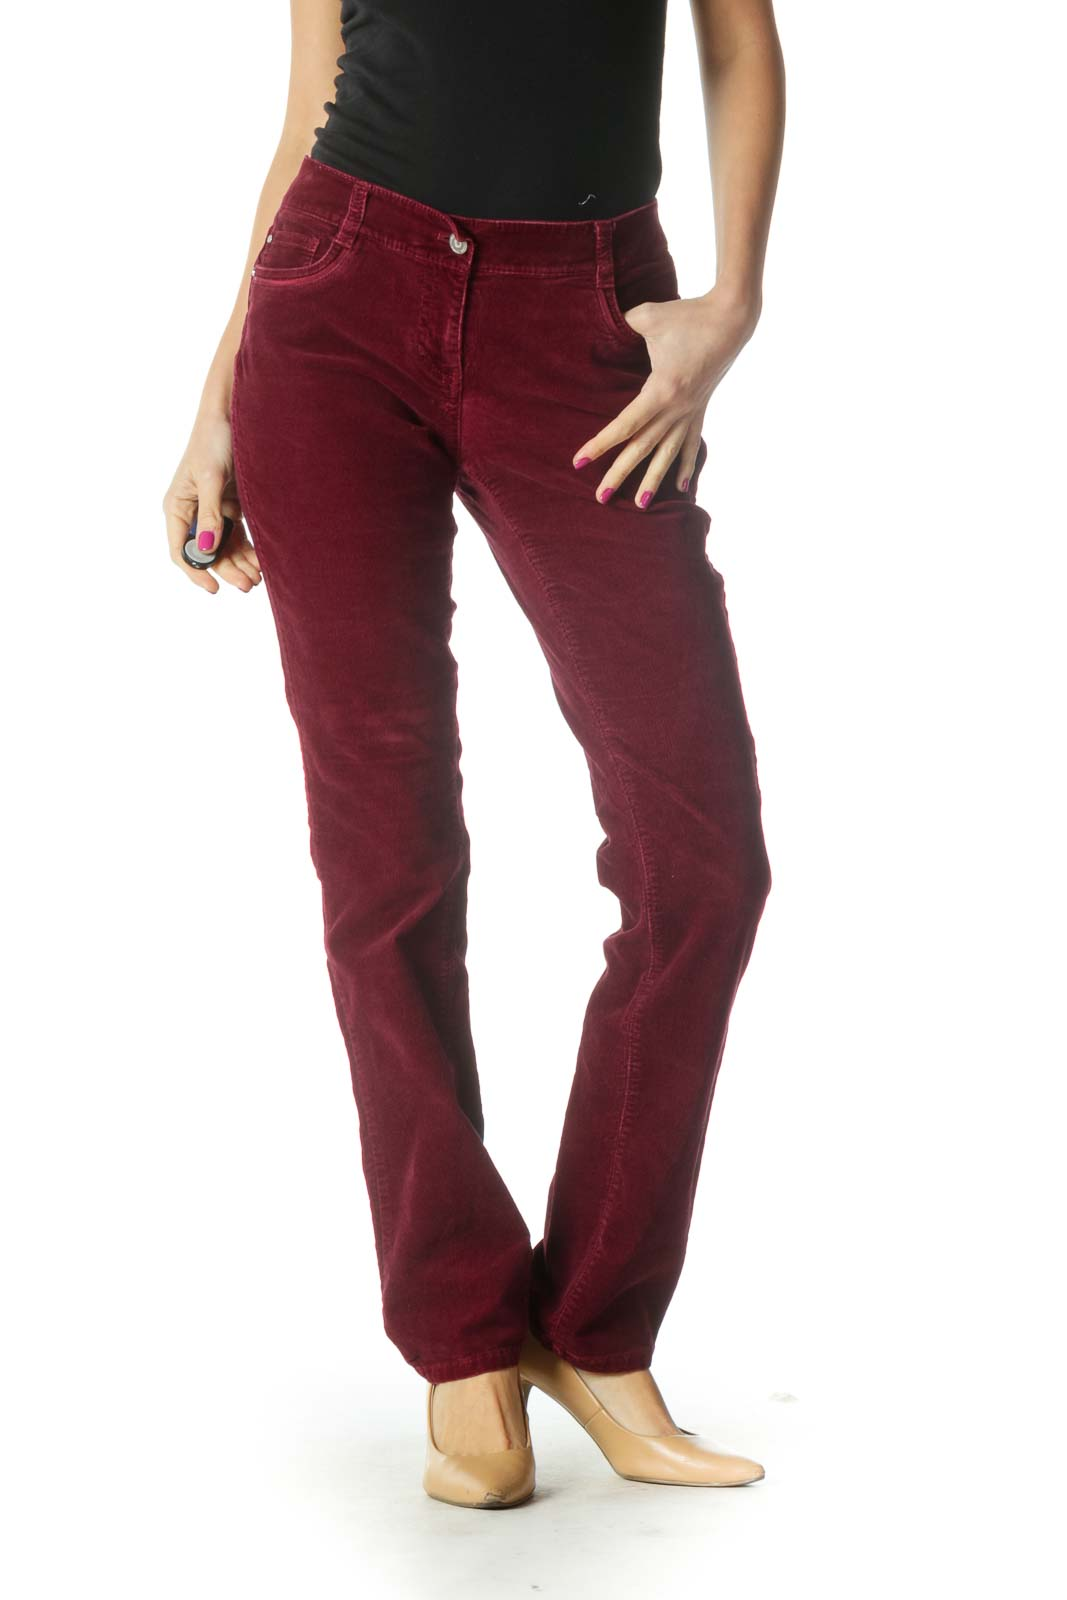 Red Casual Corduroy Pants Front